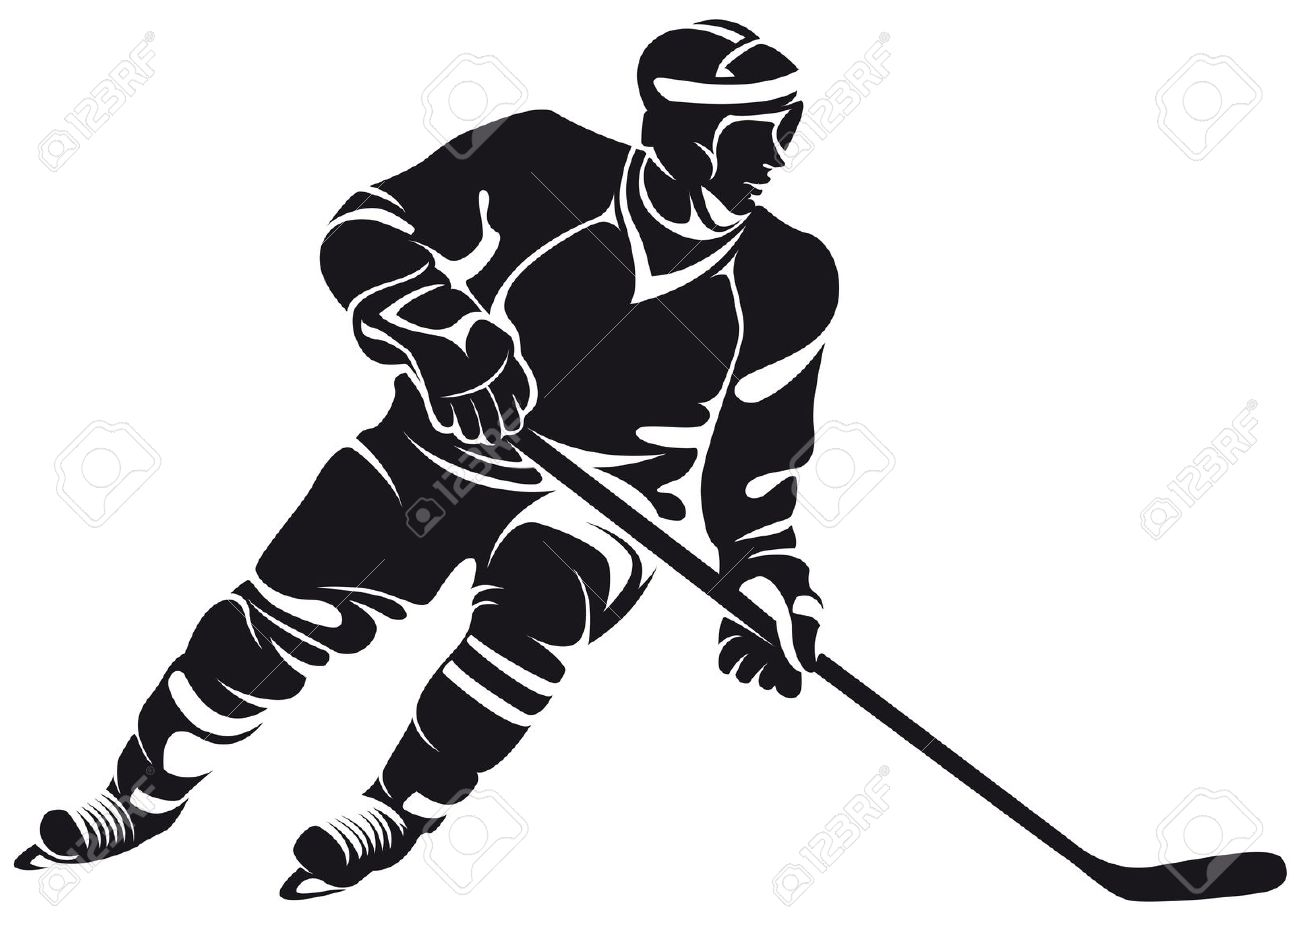 hight resolution of 1300x936 collection of hockey player clipart black and white high